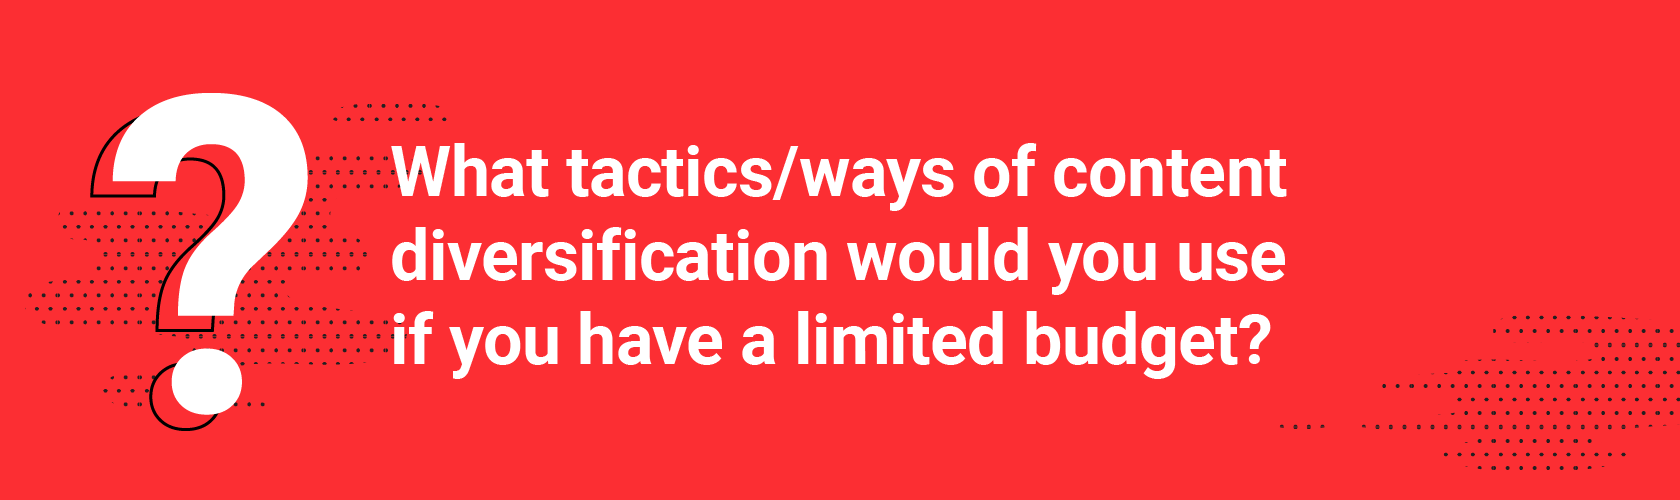 Q3. What tactics/ways of content diversification would you use if you have a limited budget?